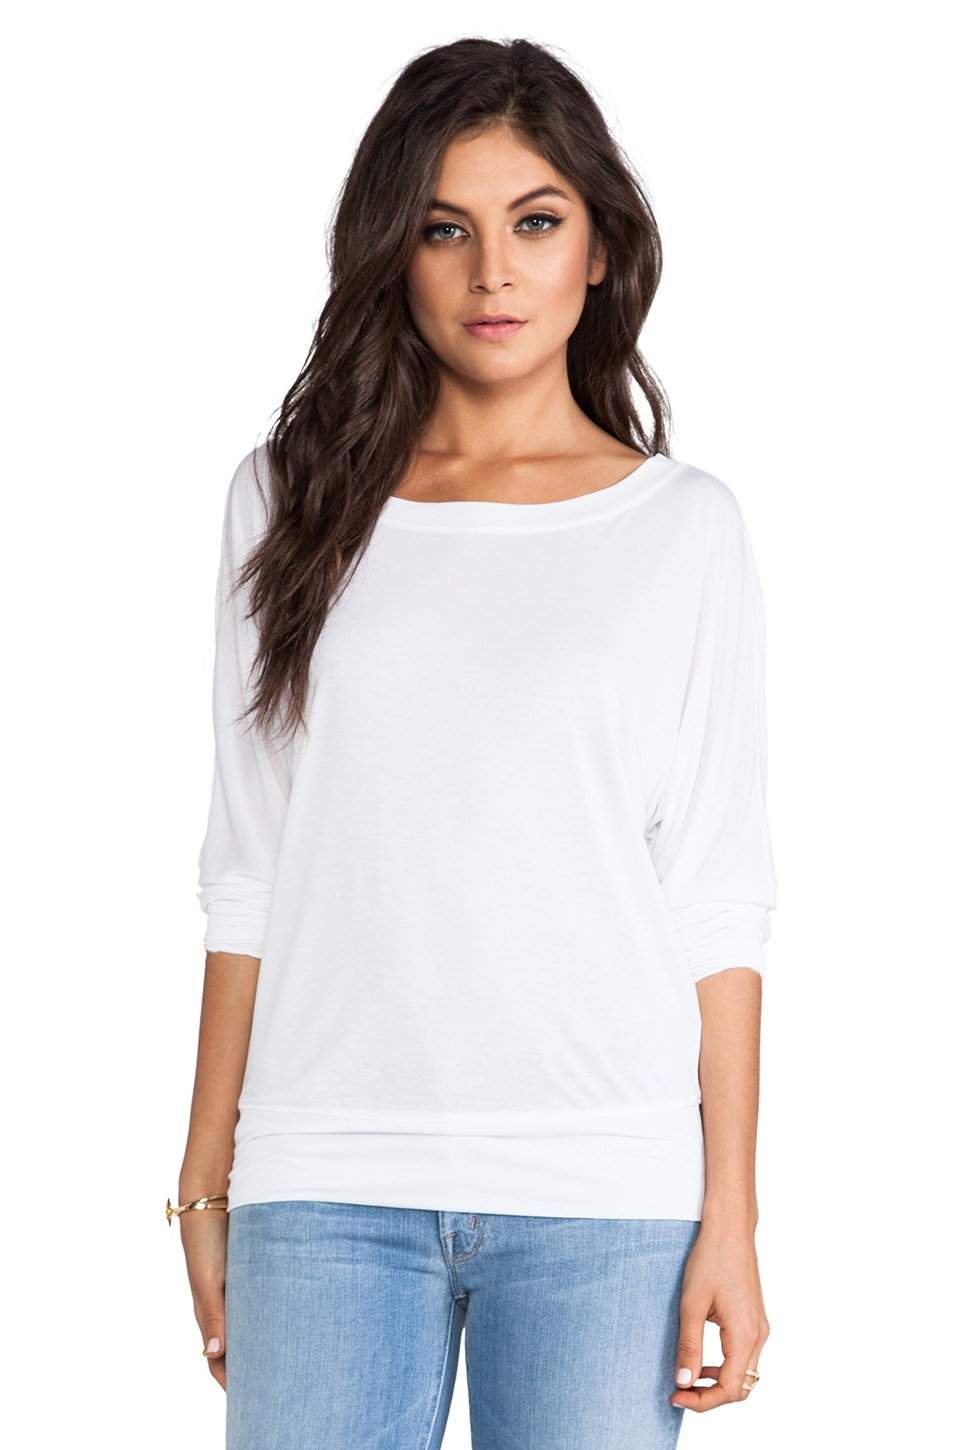 Lanston Boyfriend Sweatshirt in White